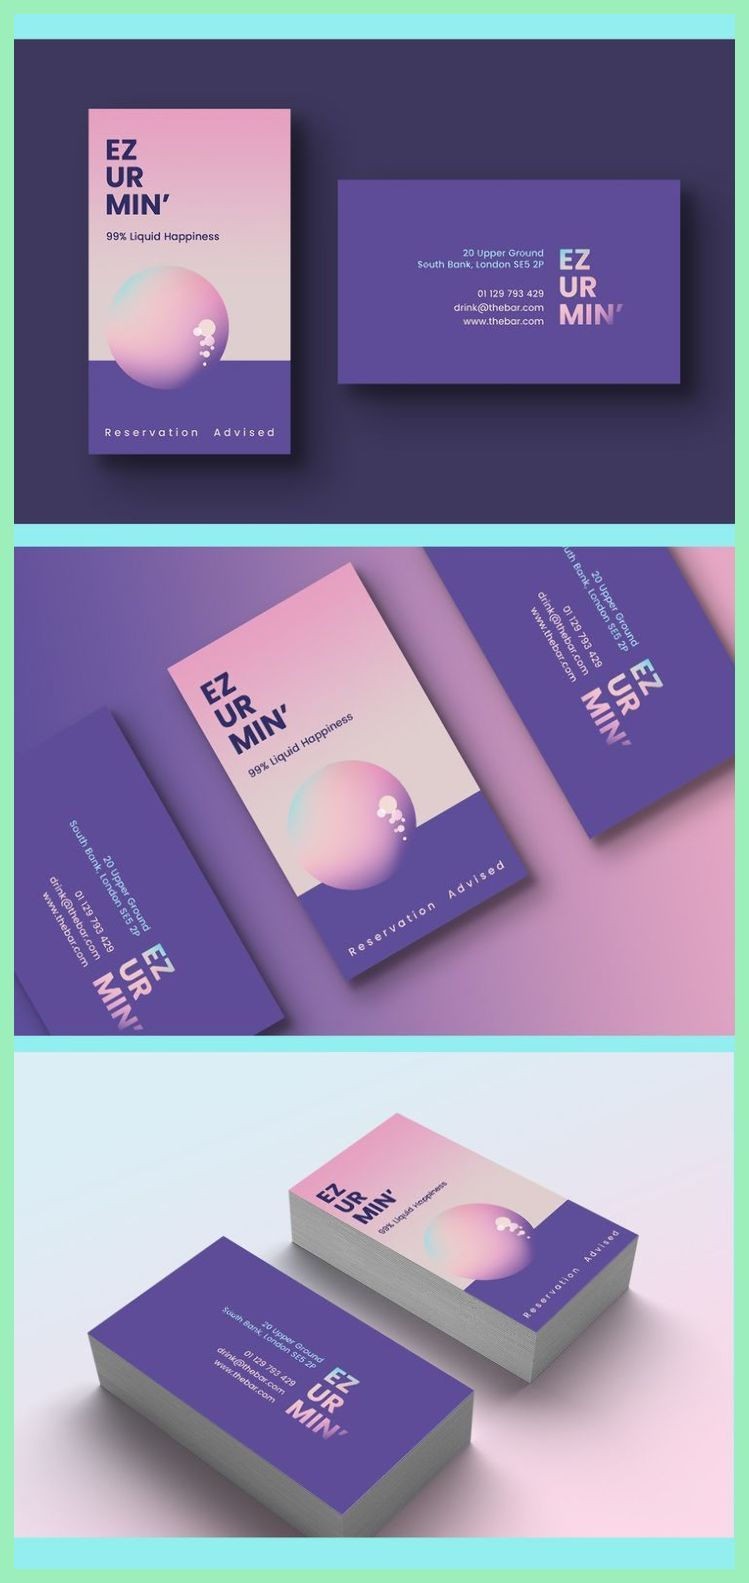 How To Run A Graphic Design Business Cocktail Bar Business Card Running A Co Graphic Design Business Card Design Business Card Ideas Printing Business Cards